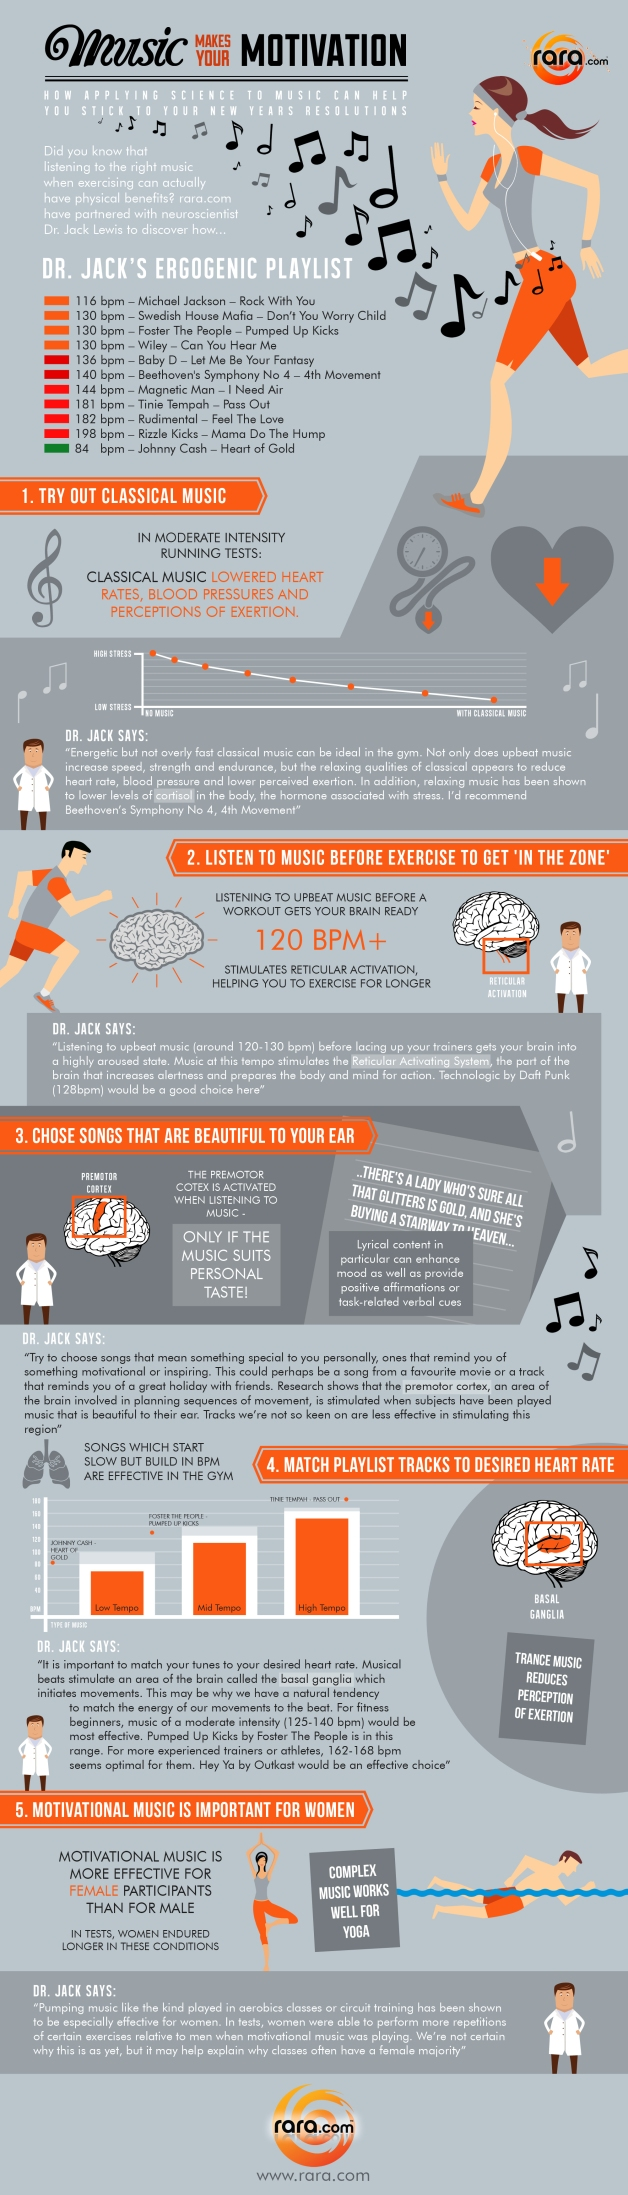 Music Makes your Motivation by Dr Jack Lewis